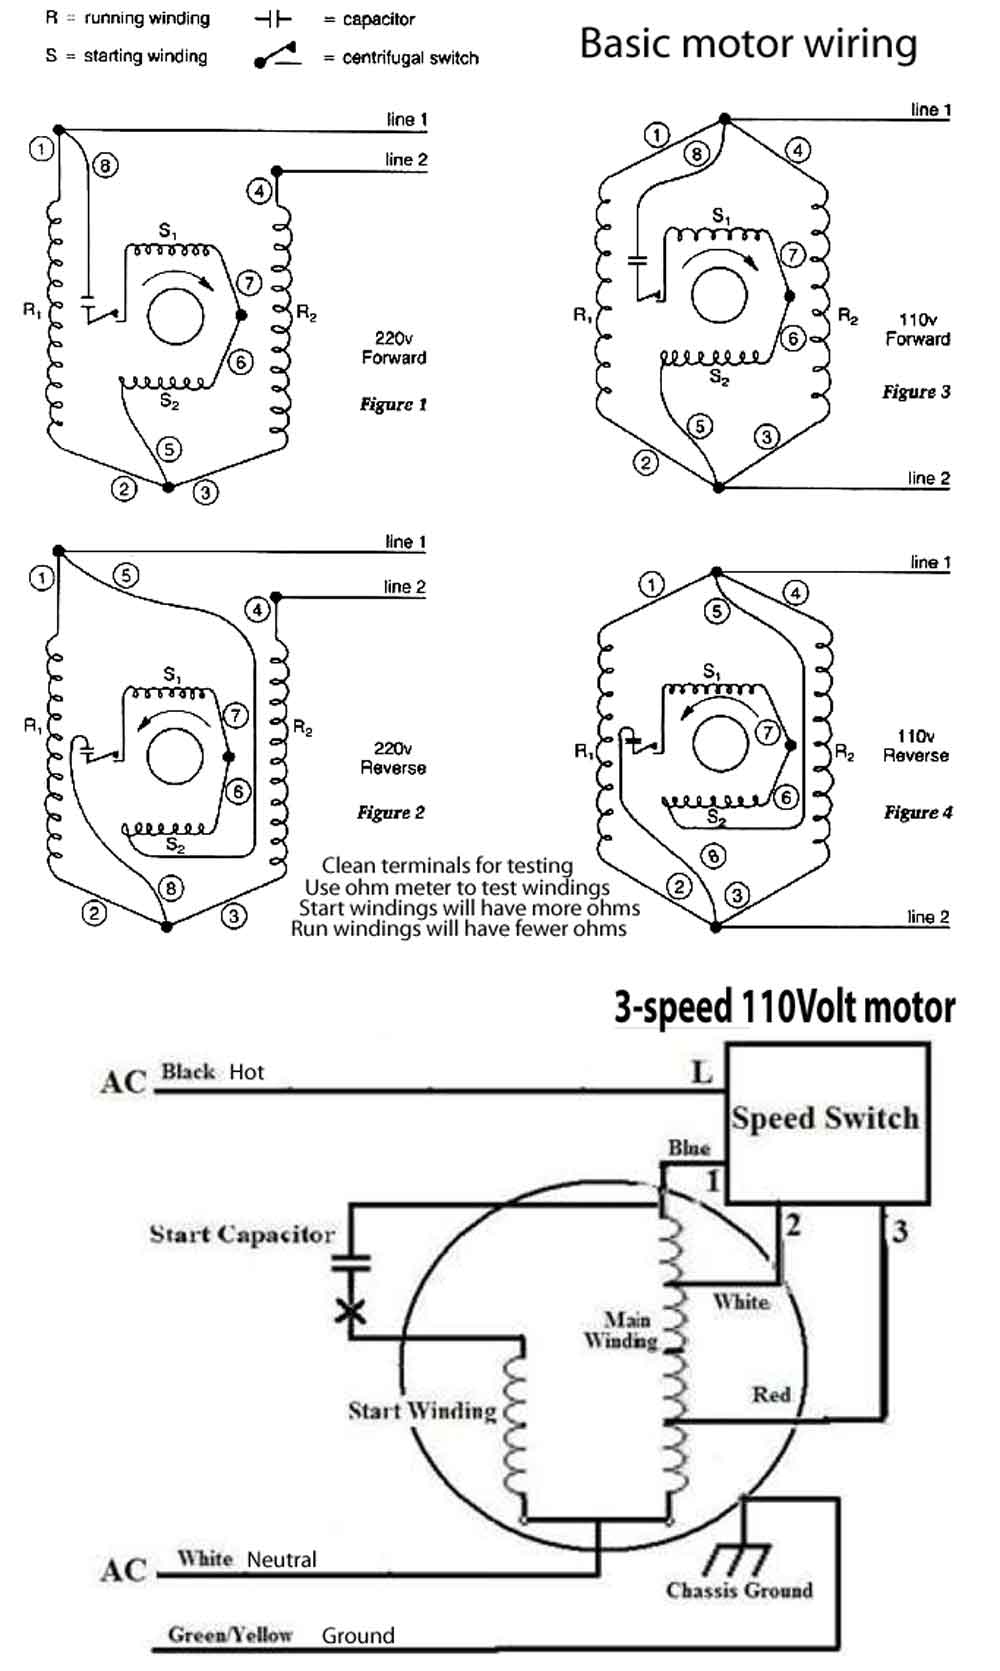 understanding electric motor wiring diagrams best wiring library Wiring Motor Electric Leeson Diagram C195t17fb60b wire size for motor 110 volt motor wiring diagram basic motor wiring illustration jpg